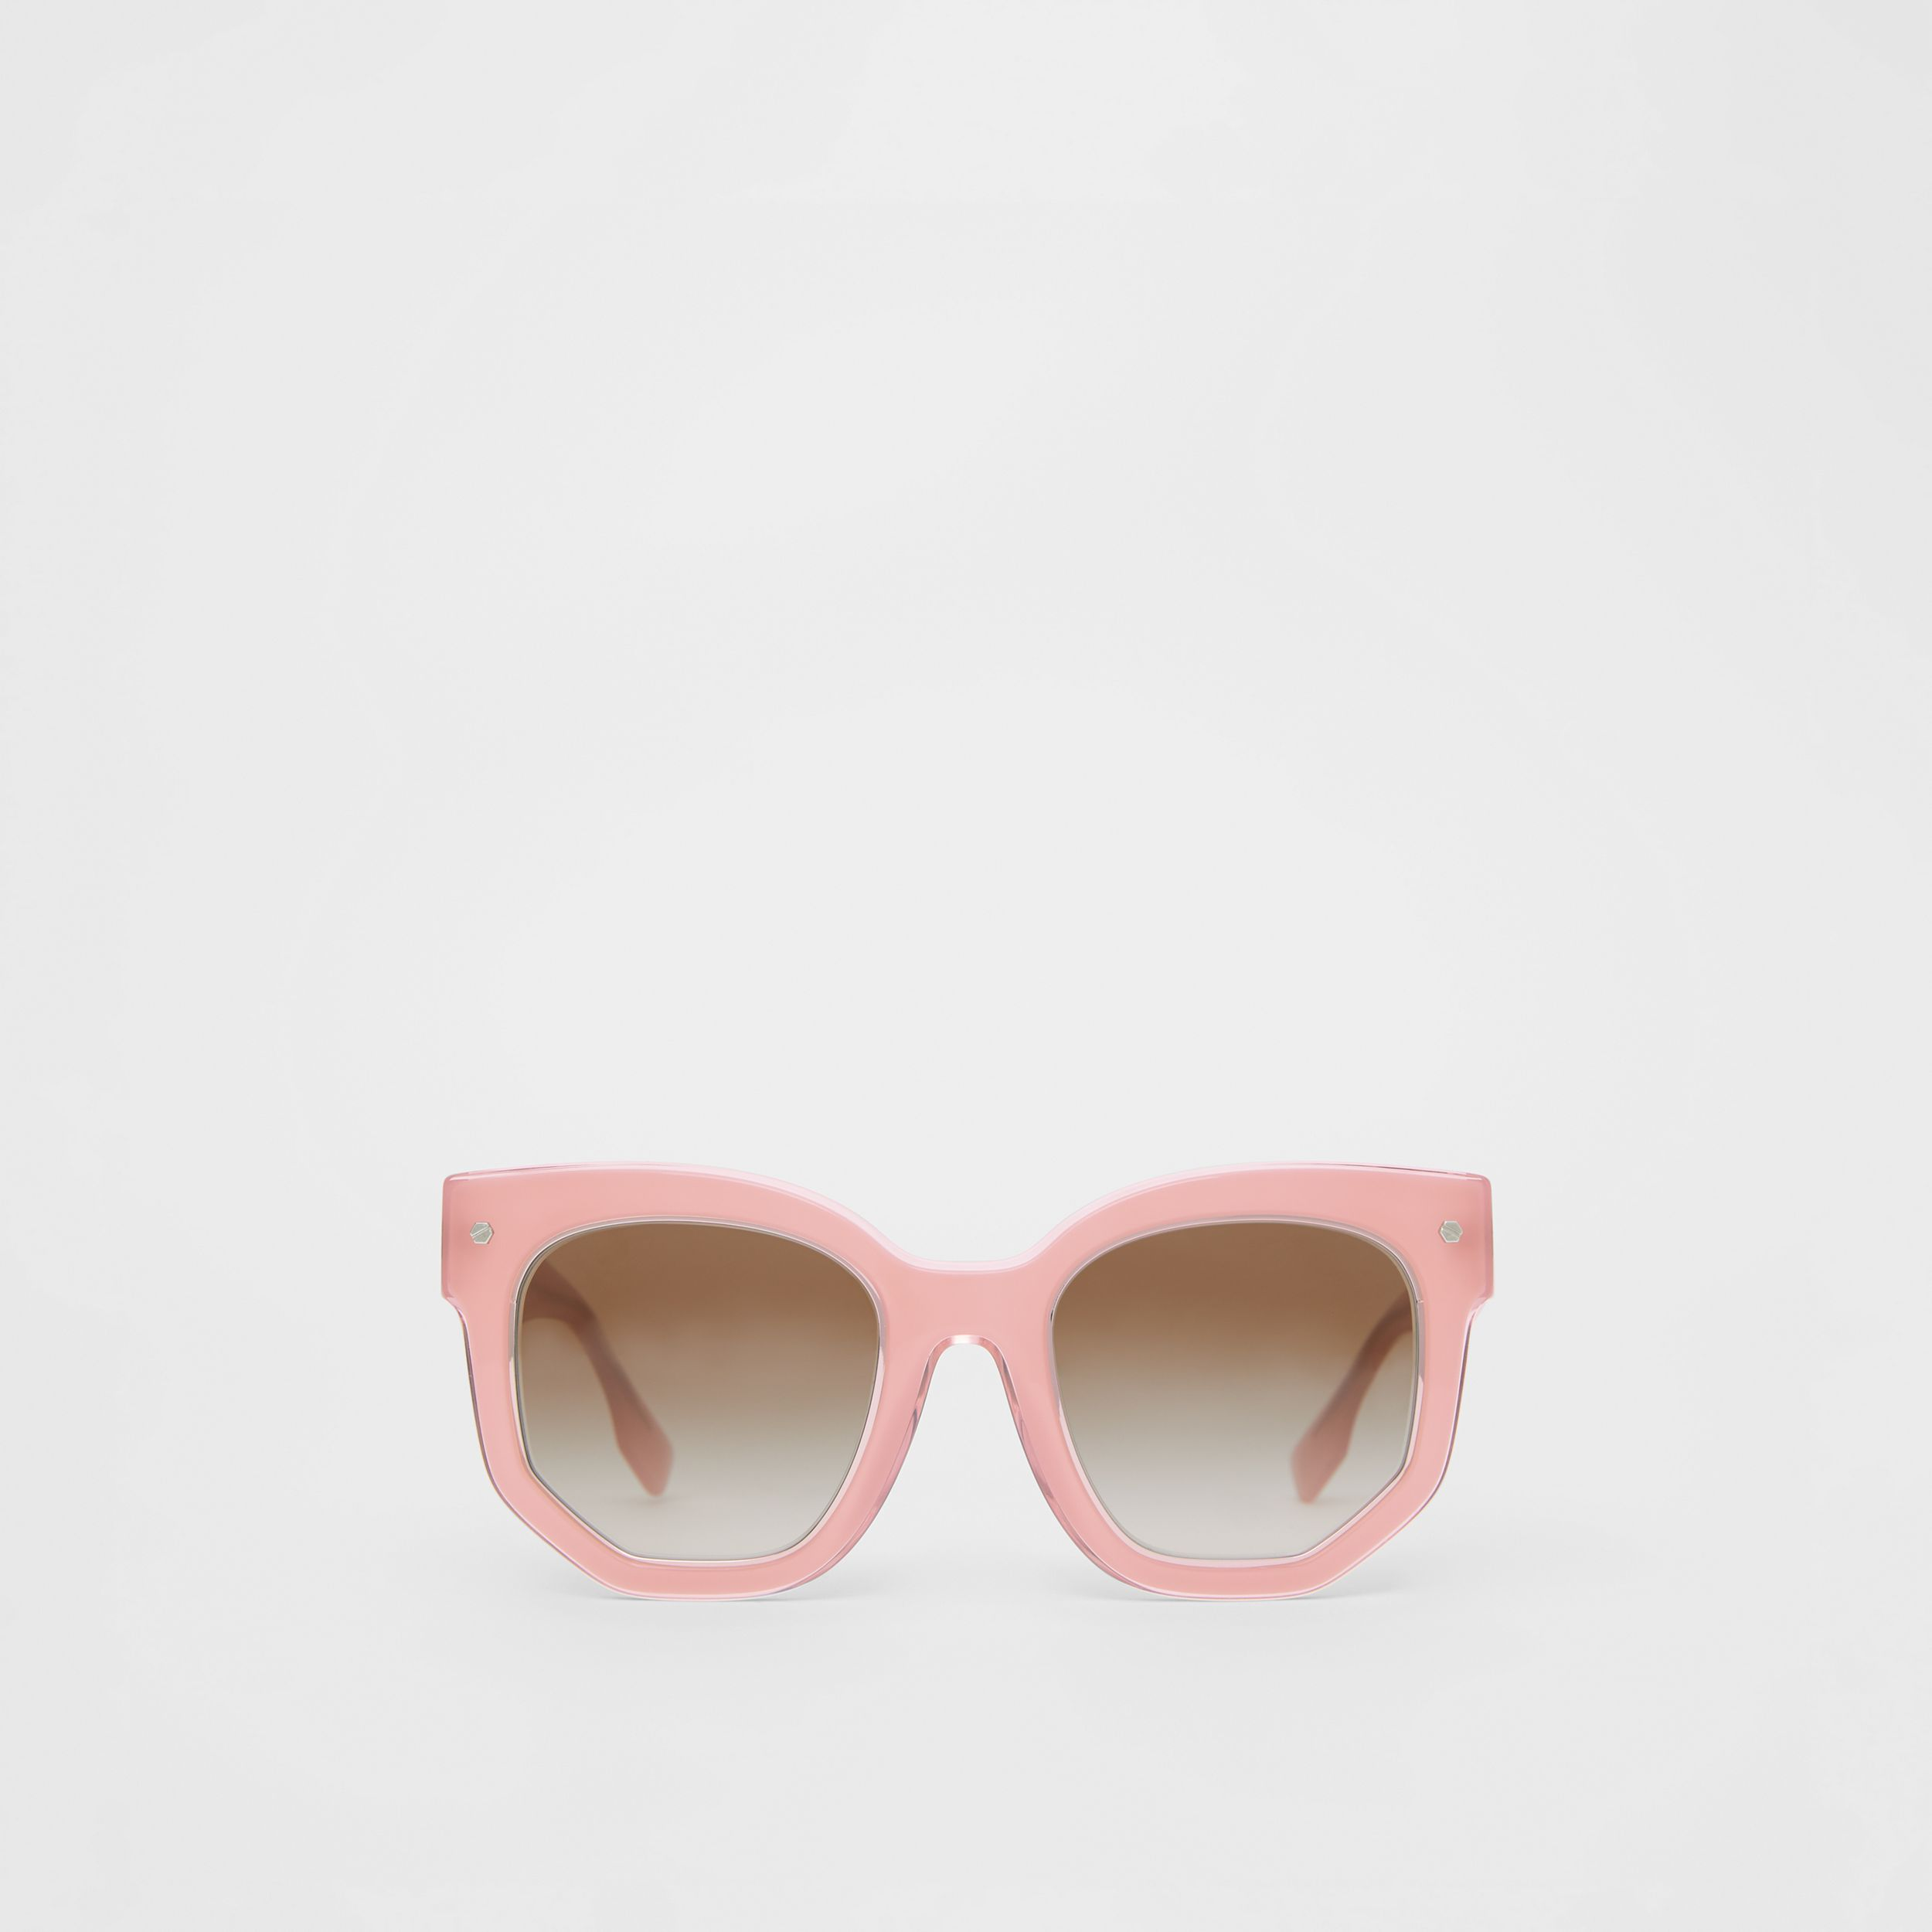 Geometric Frame Sunglasses in Pink - Women | Burberry United Kingdom - 1